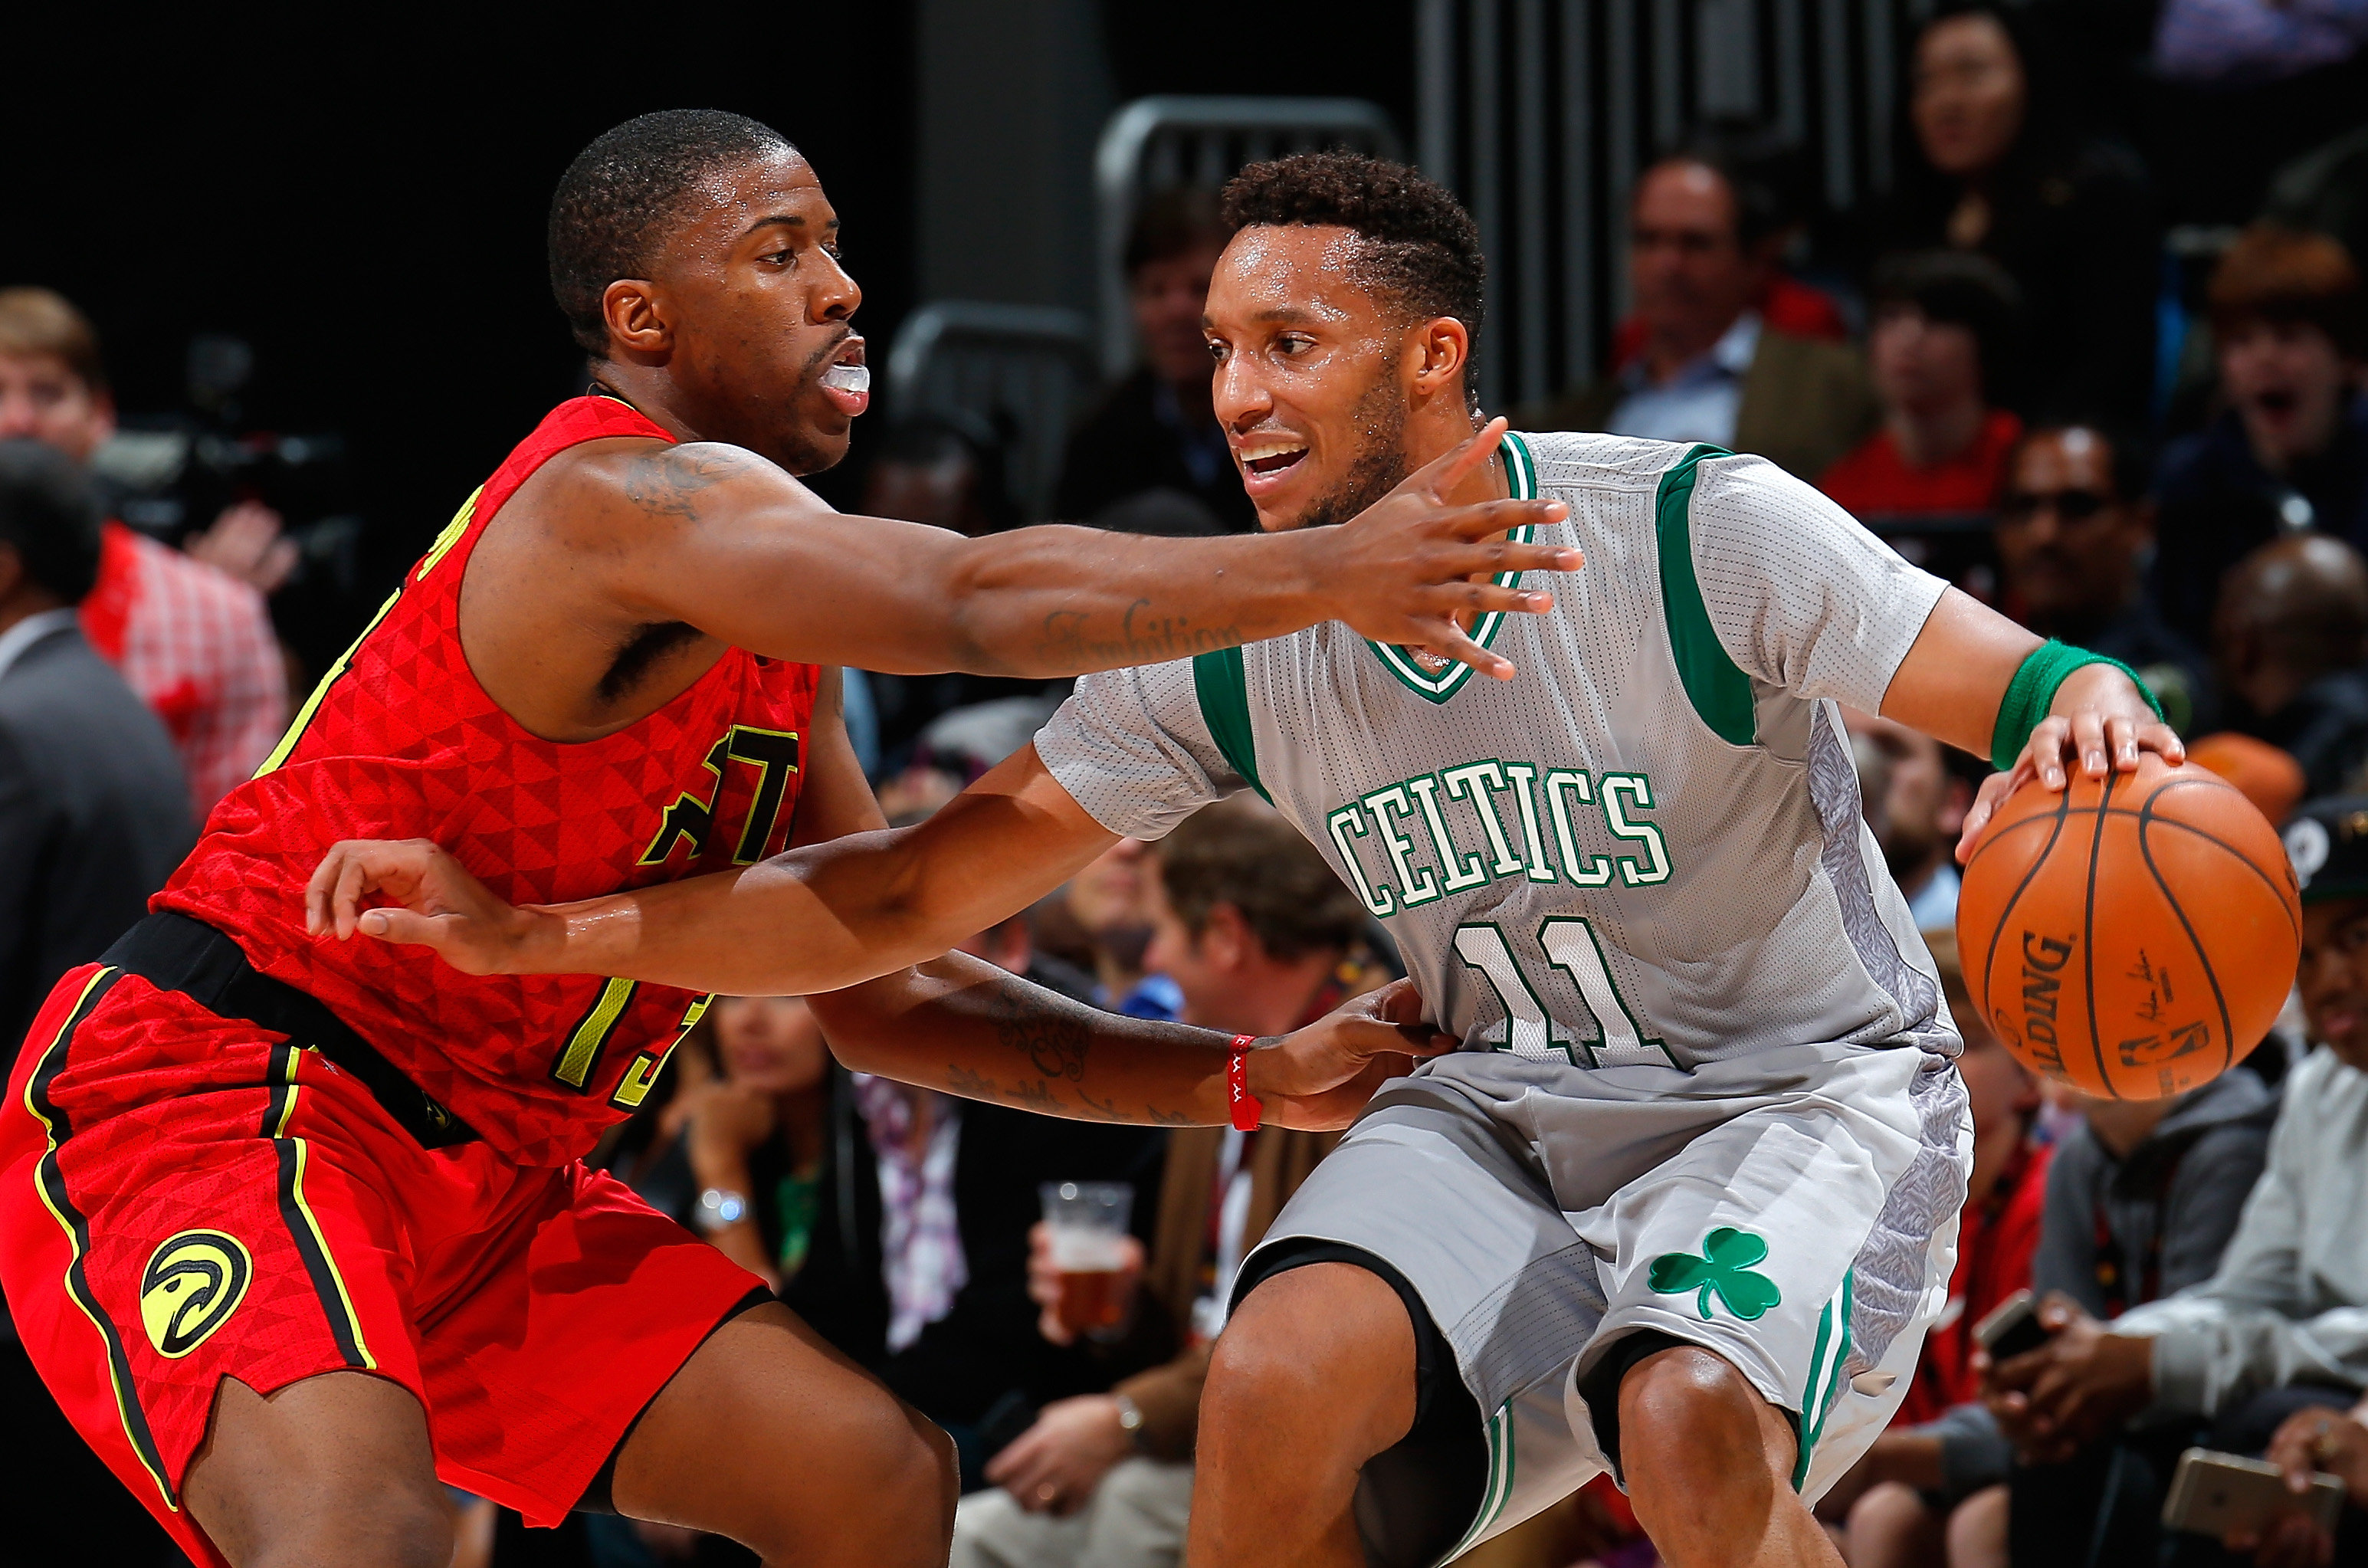 ATLANTA, GA - NOVEMBER 24:  Lamar Patterson #13 of the Atlanta Hawks defends against Evan Turner #11 of the Boston Celtics at Philips Arena on November 24, 2015 in Atlanta, Georgia.  NOTE TO USER User expressly acknowledges and agrees that, by downloading